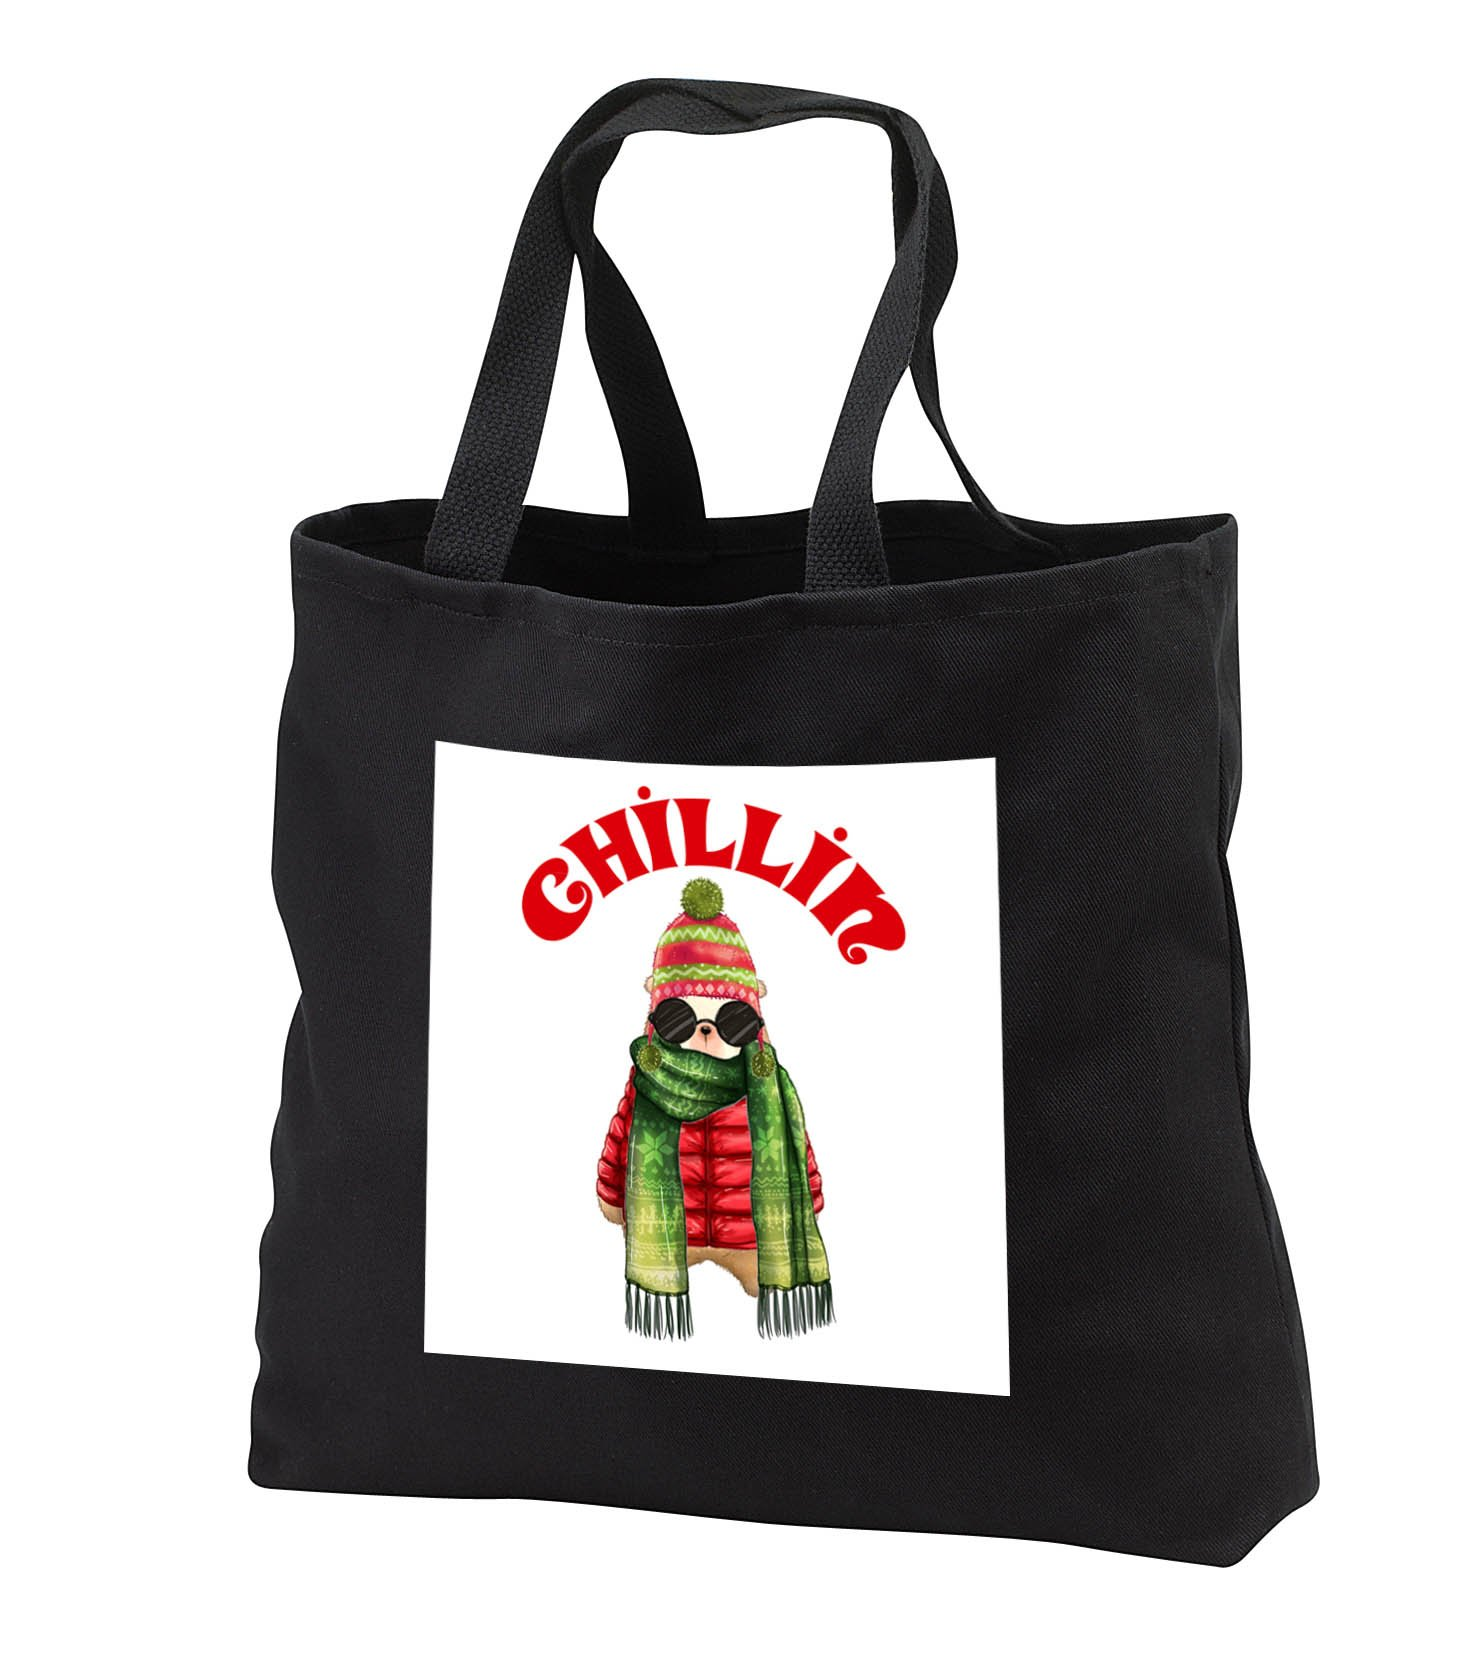 Doreen Erhardt Christmas Collection - Chillin Funny Winter Polar Bear in Winter Coat and Sunglasses - Tote Bags - Black Tote Bag 14w x 14h x 3d (tb_286330_1)